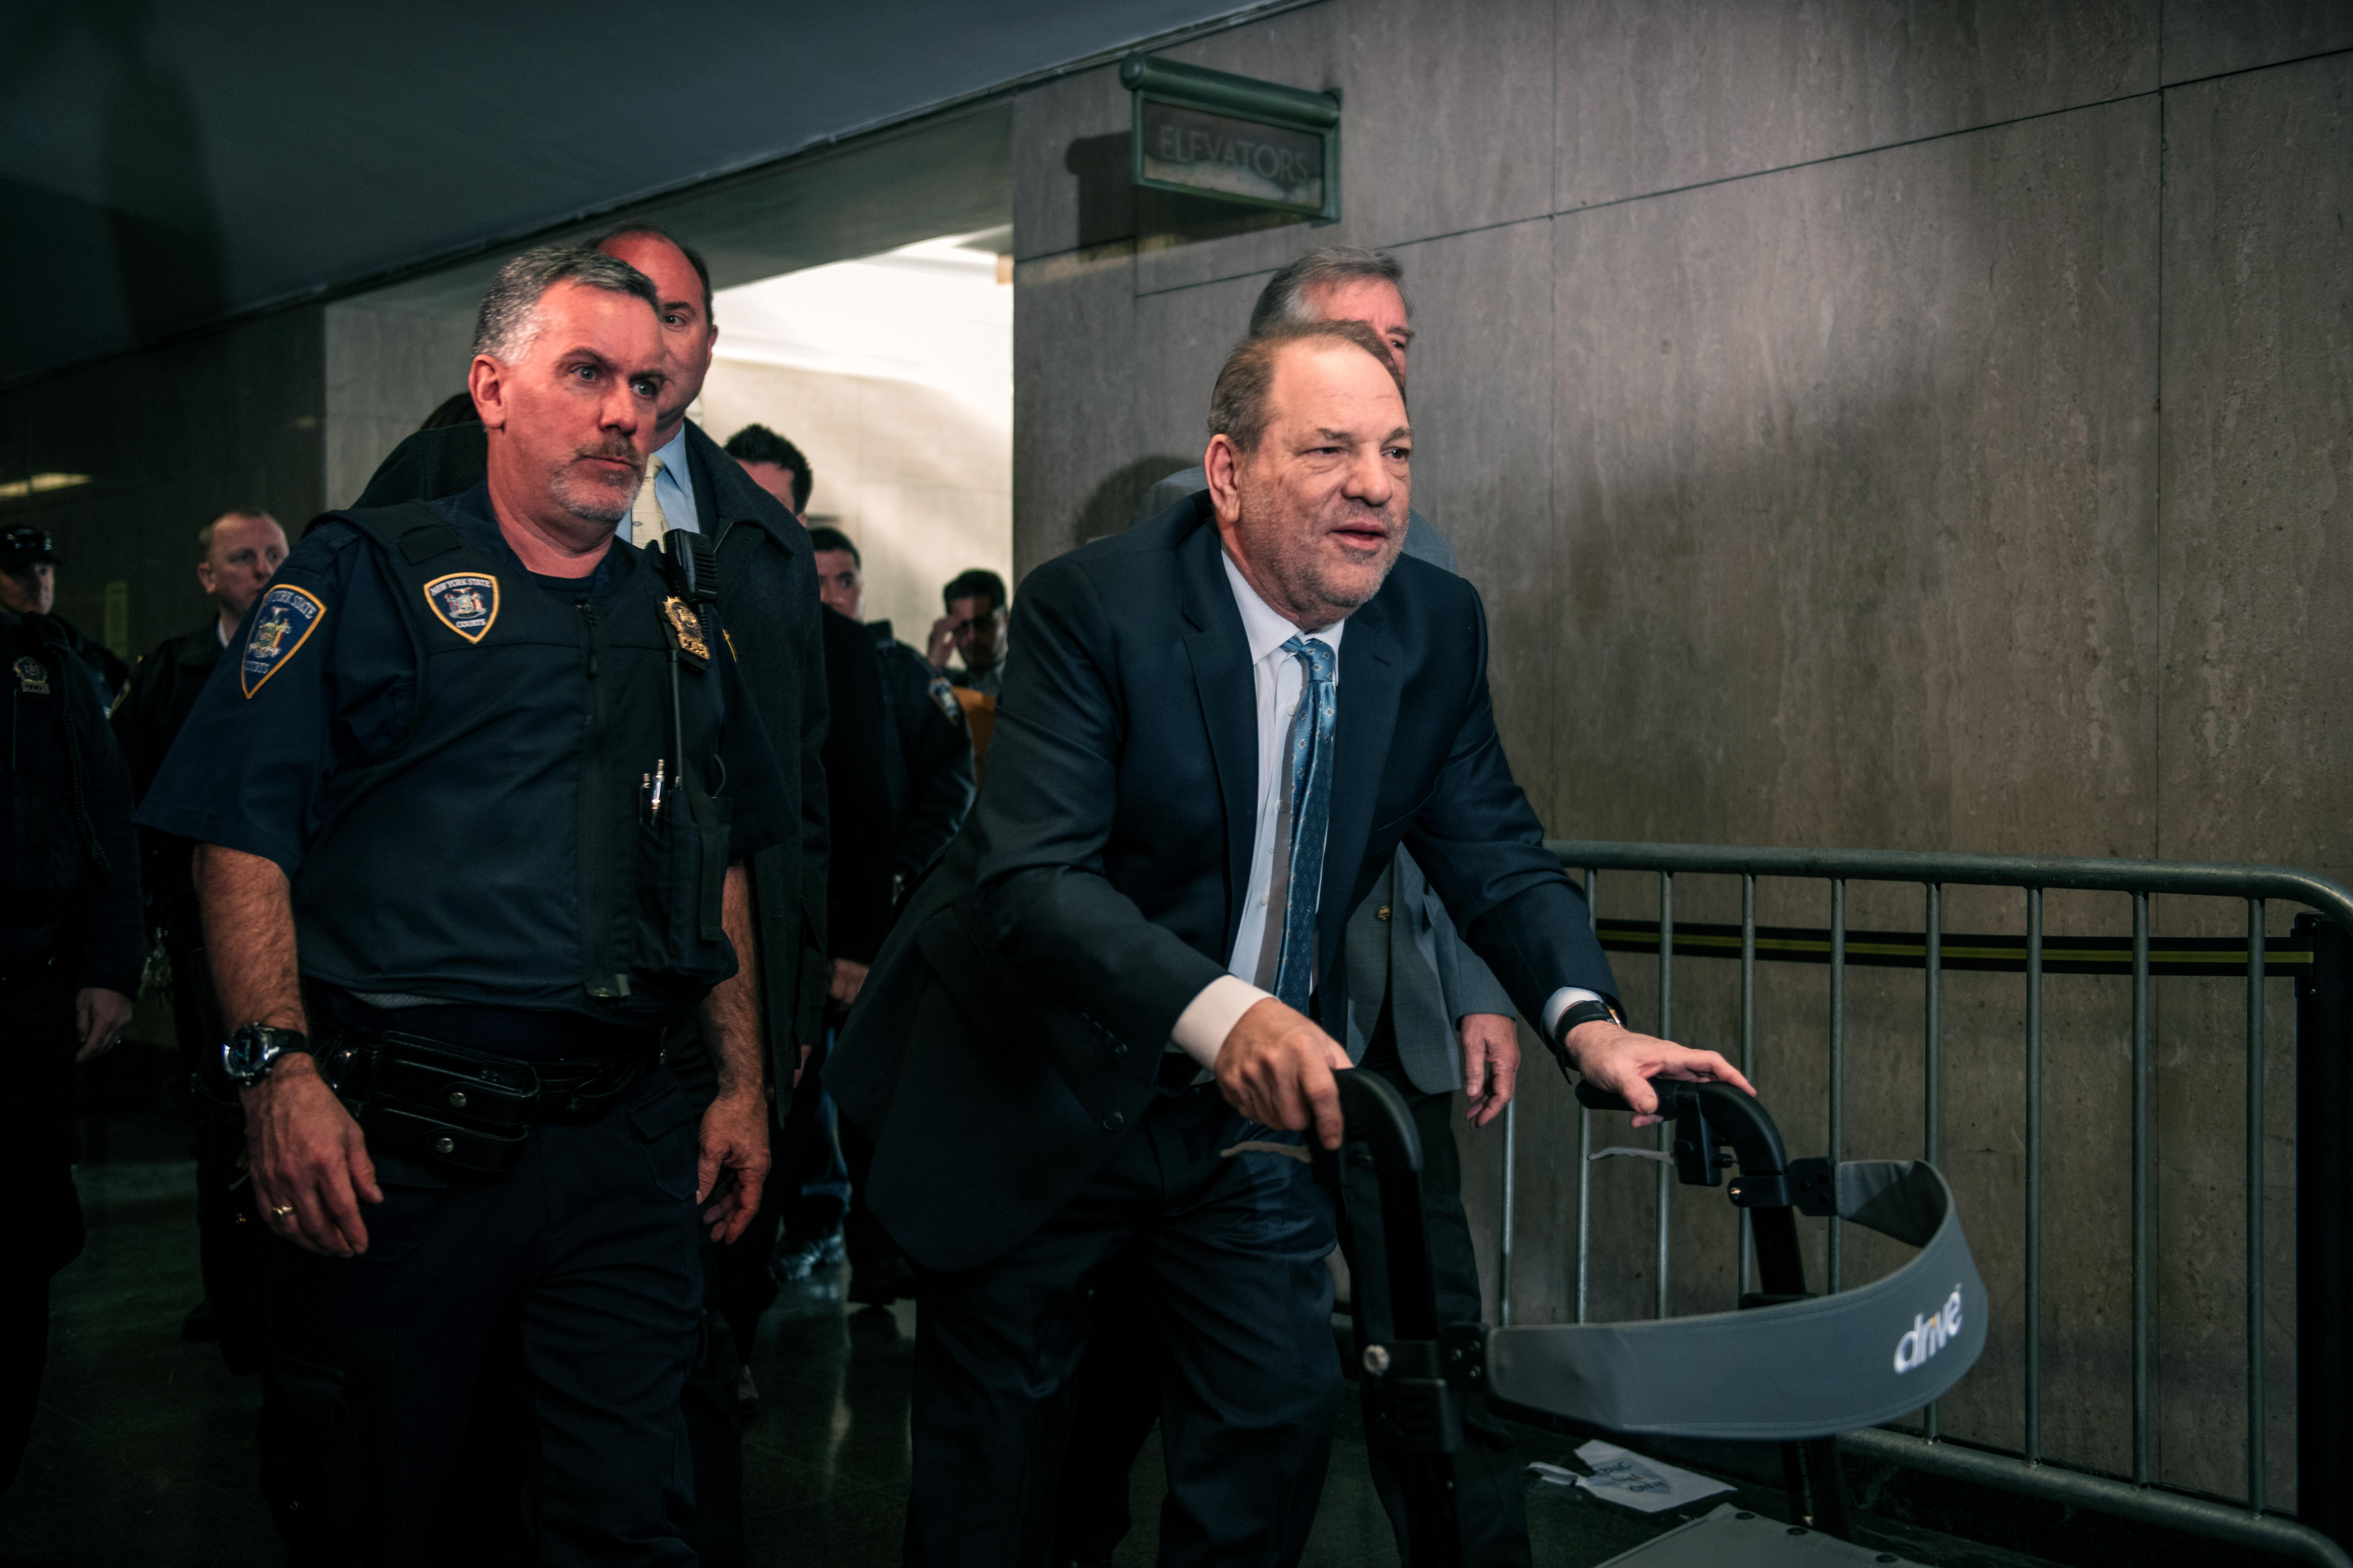 Harvey Weinstein found guilty of rape at New York trial